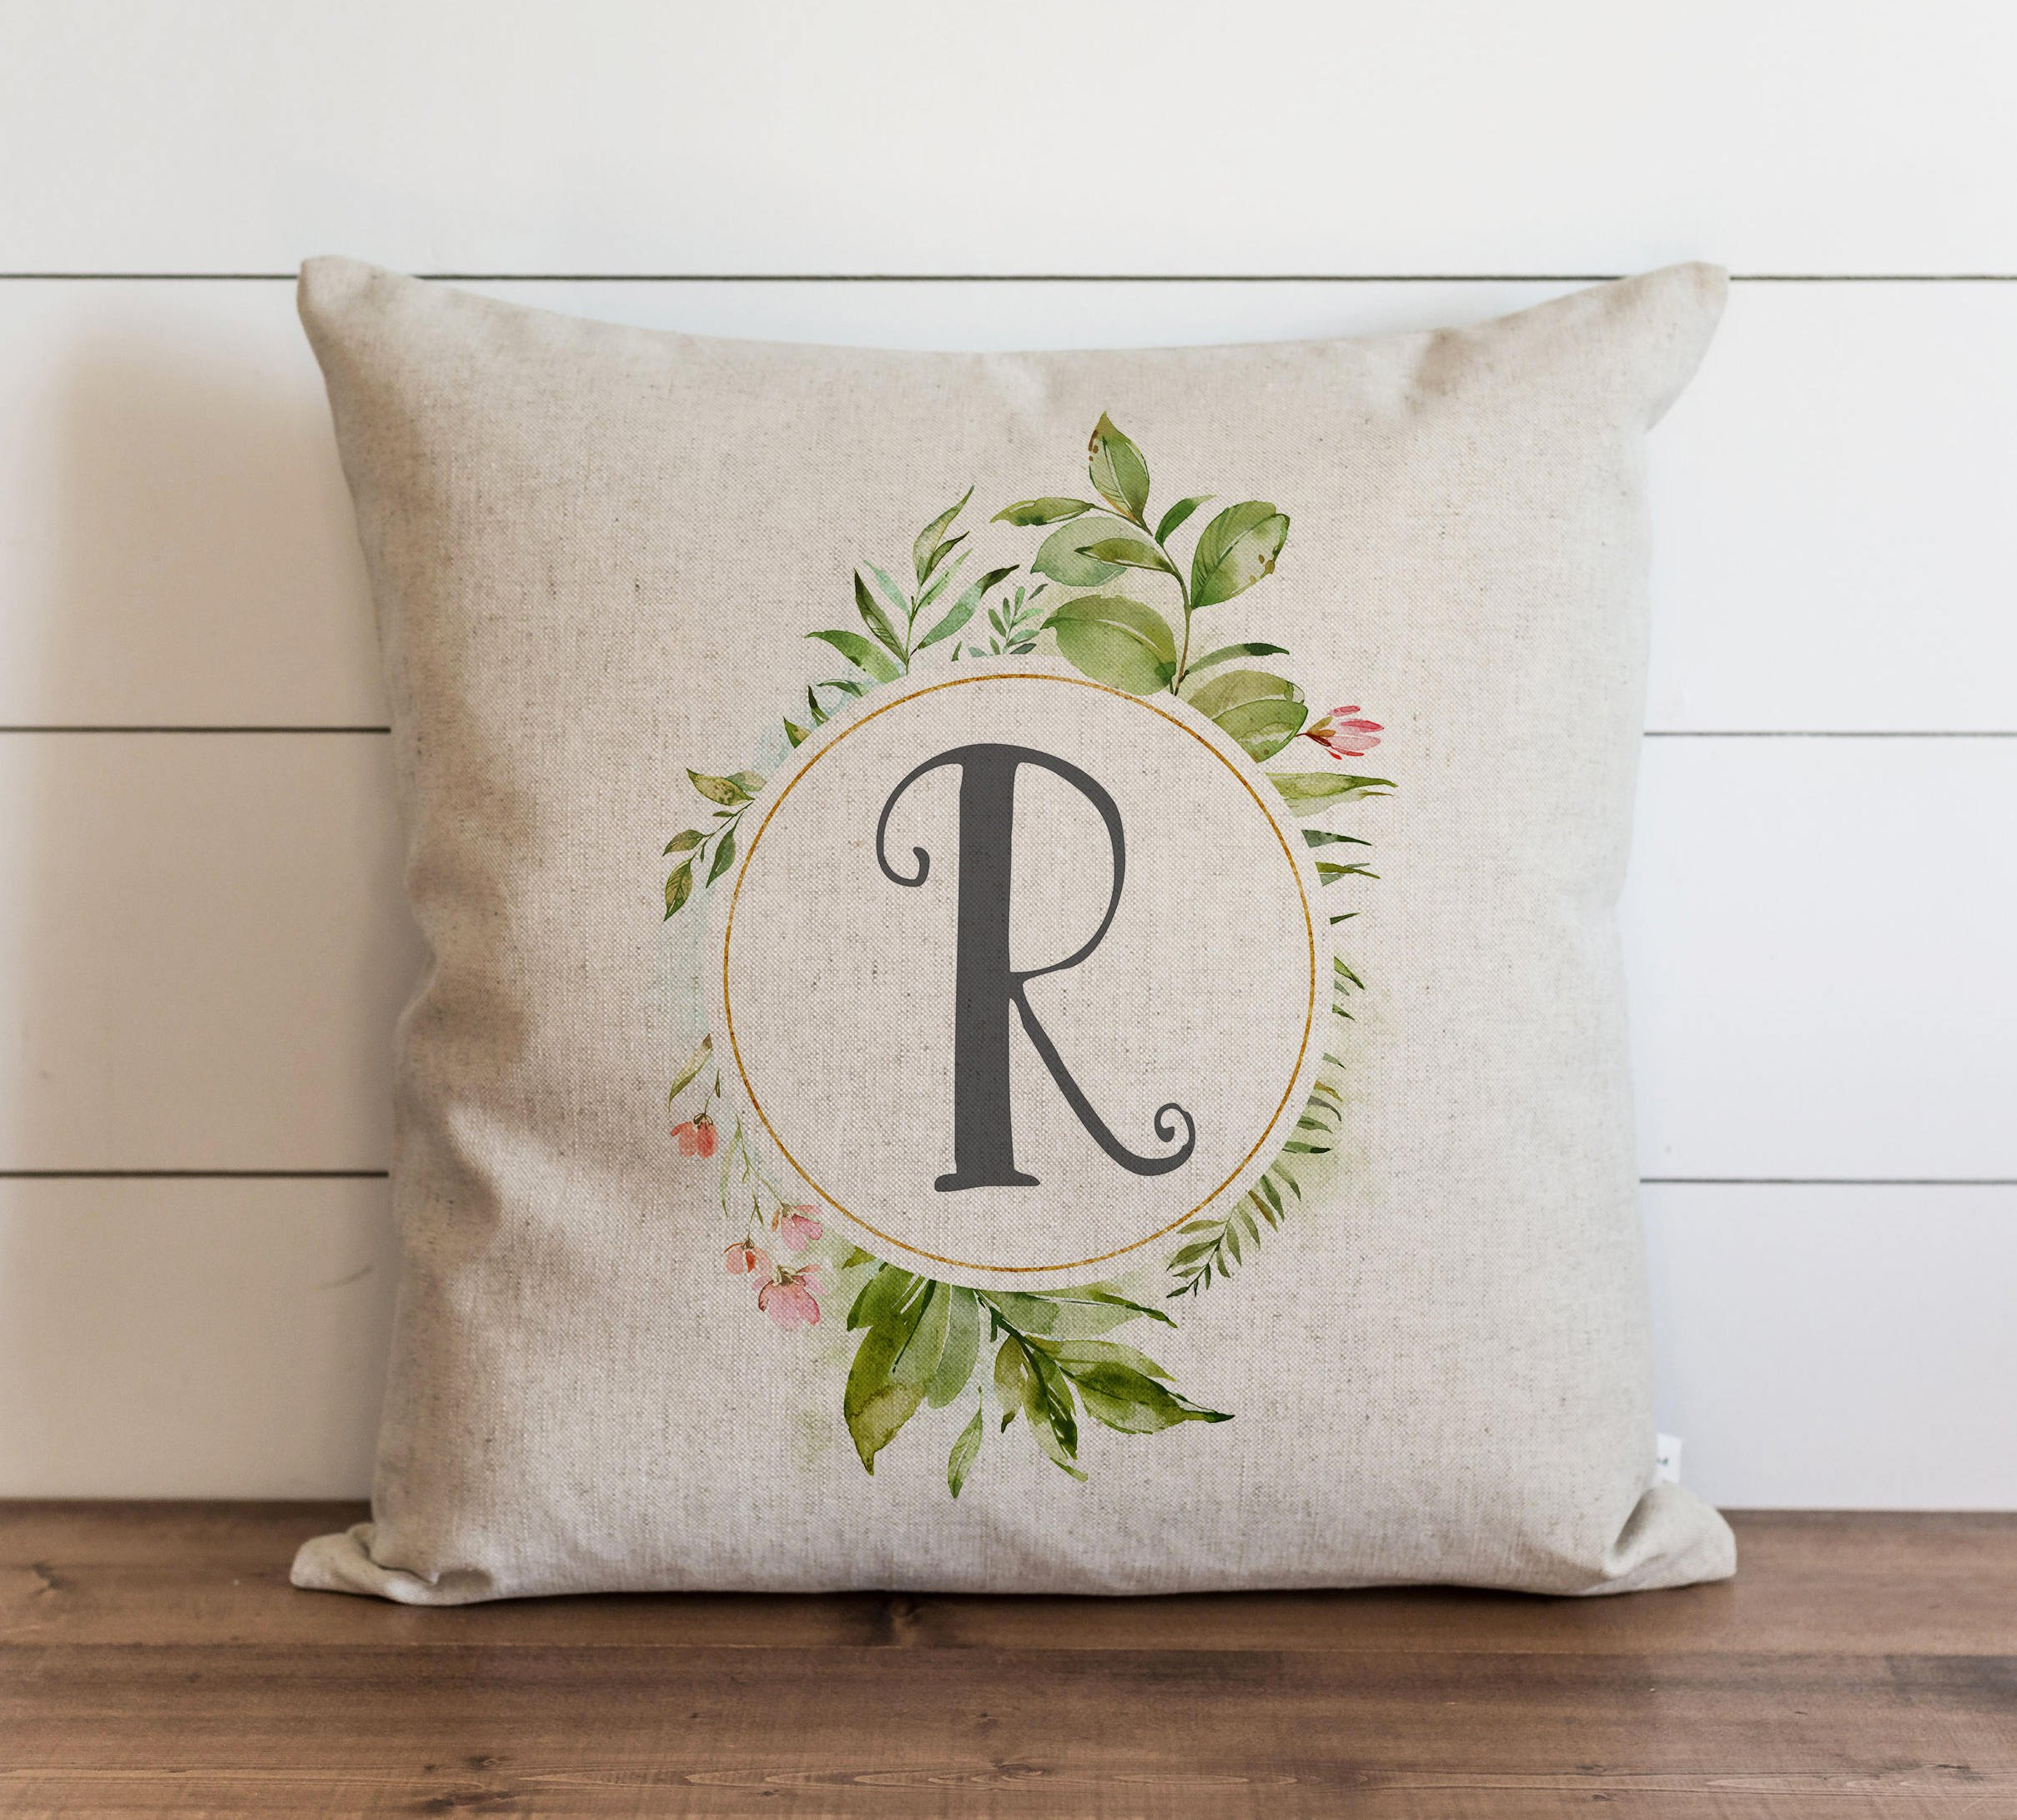 TINA-R Floral Monogram 18x18 Inch Pillow Cover Everyday Throw Pillow Gift Accent Pillow Cushion Cover